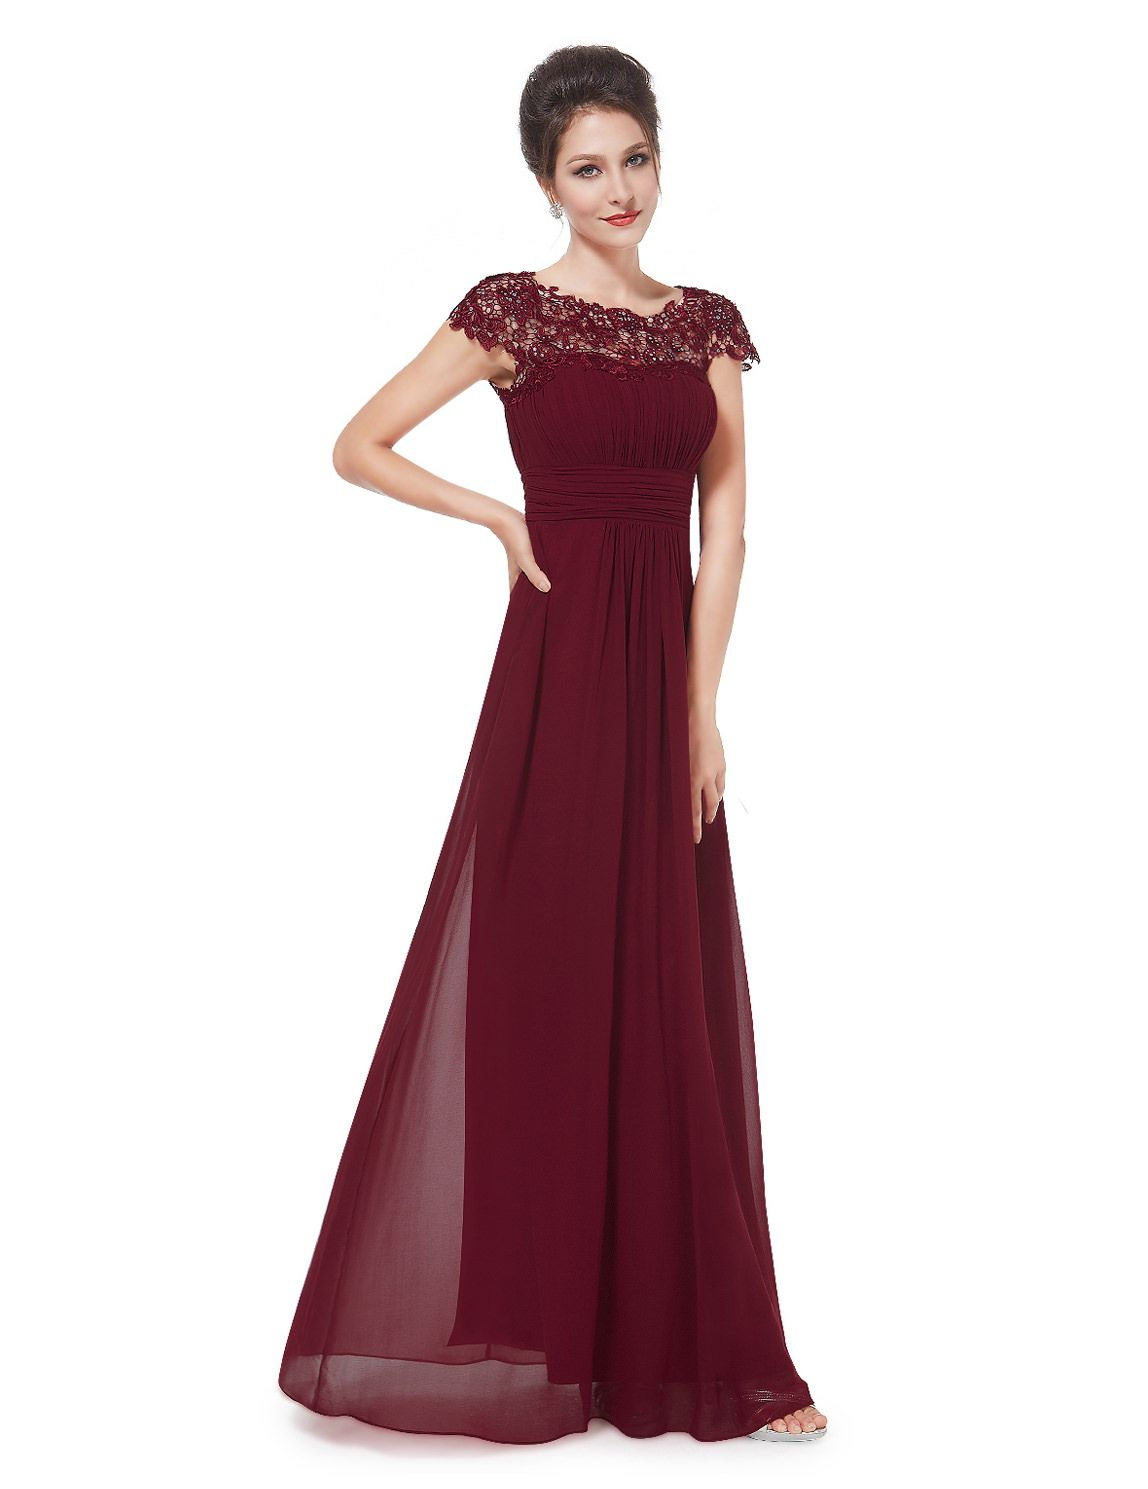 edles langes spitze abendkleid in bordeaux rot | abendkleid